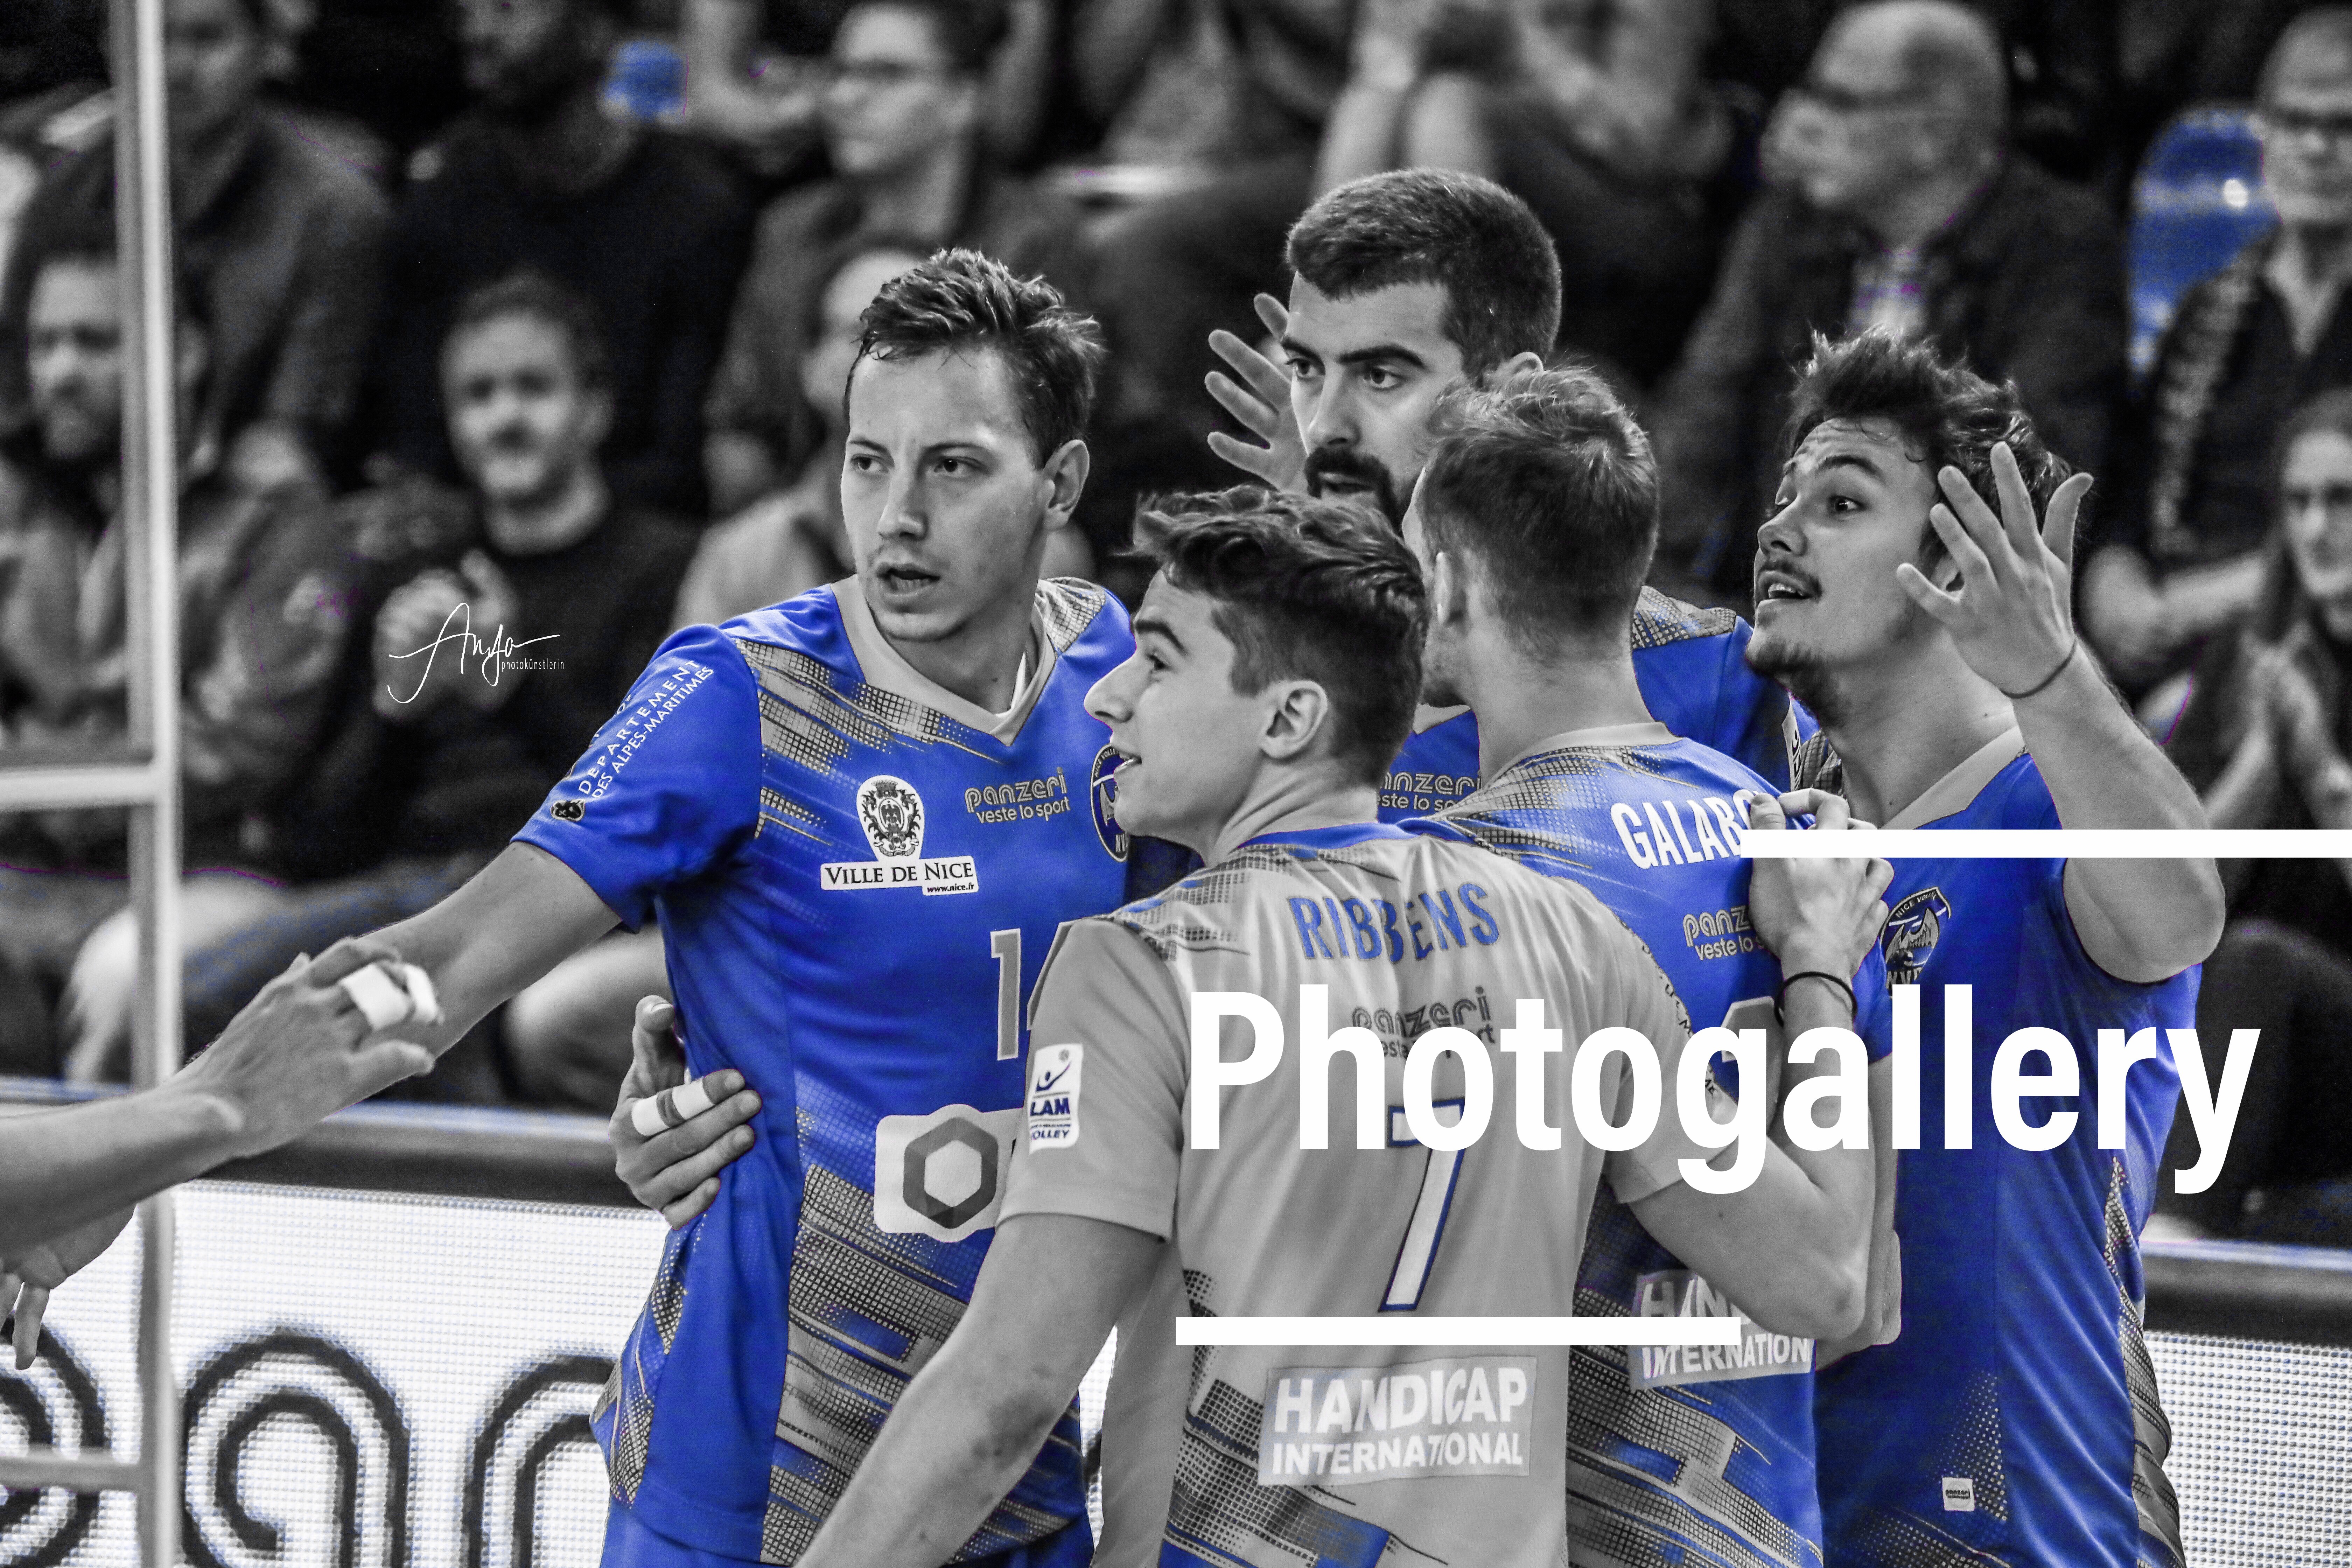 #France Round 18: Photogallery of Nice-Sete